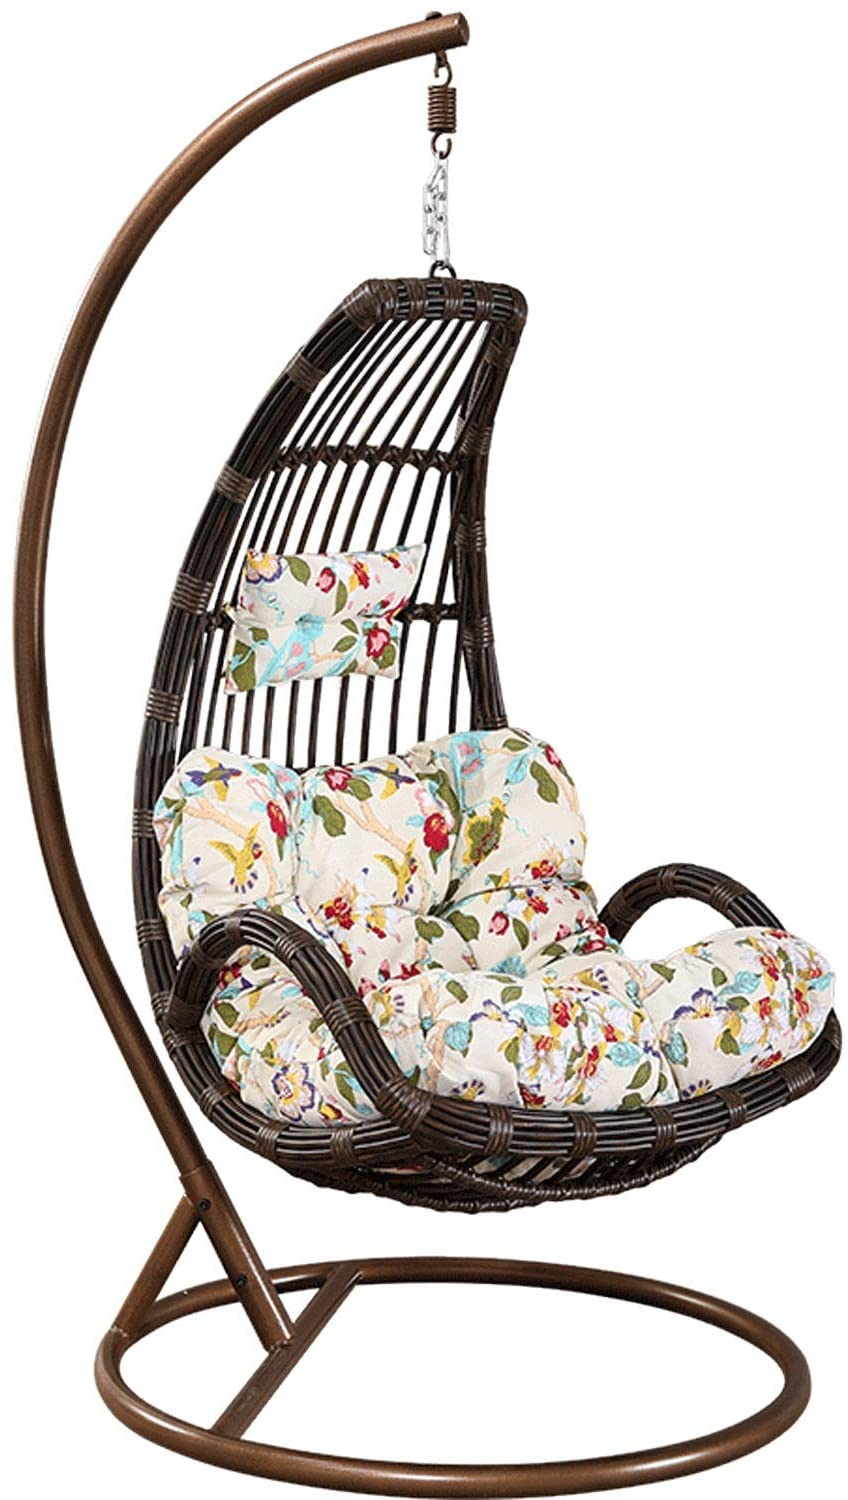 HOIHO New PE Rattan Hanging Chair, Outdoor Decoration Egg-Shaped Rocking Chair with Cushions Indoor Balcony Rest Cradle Chair to Send Carpet Weight 130KG (Color : Brown)